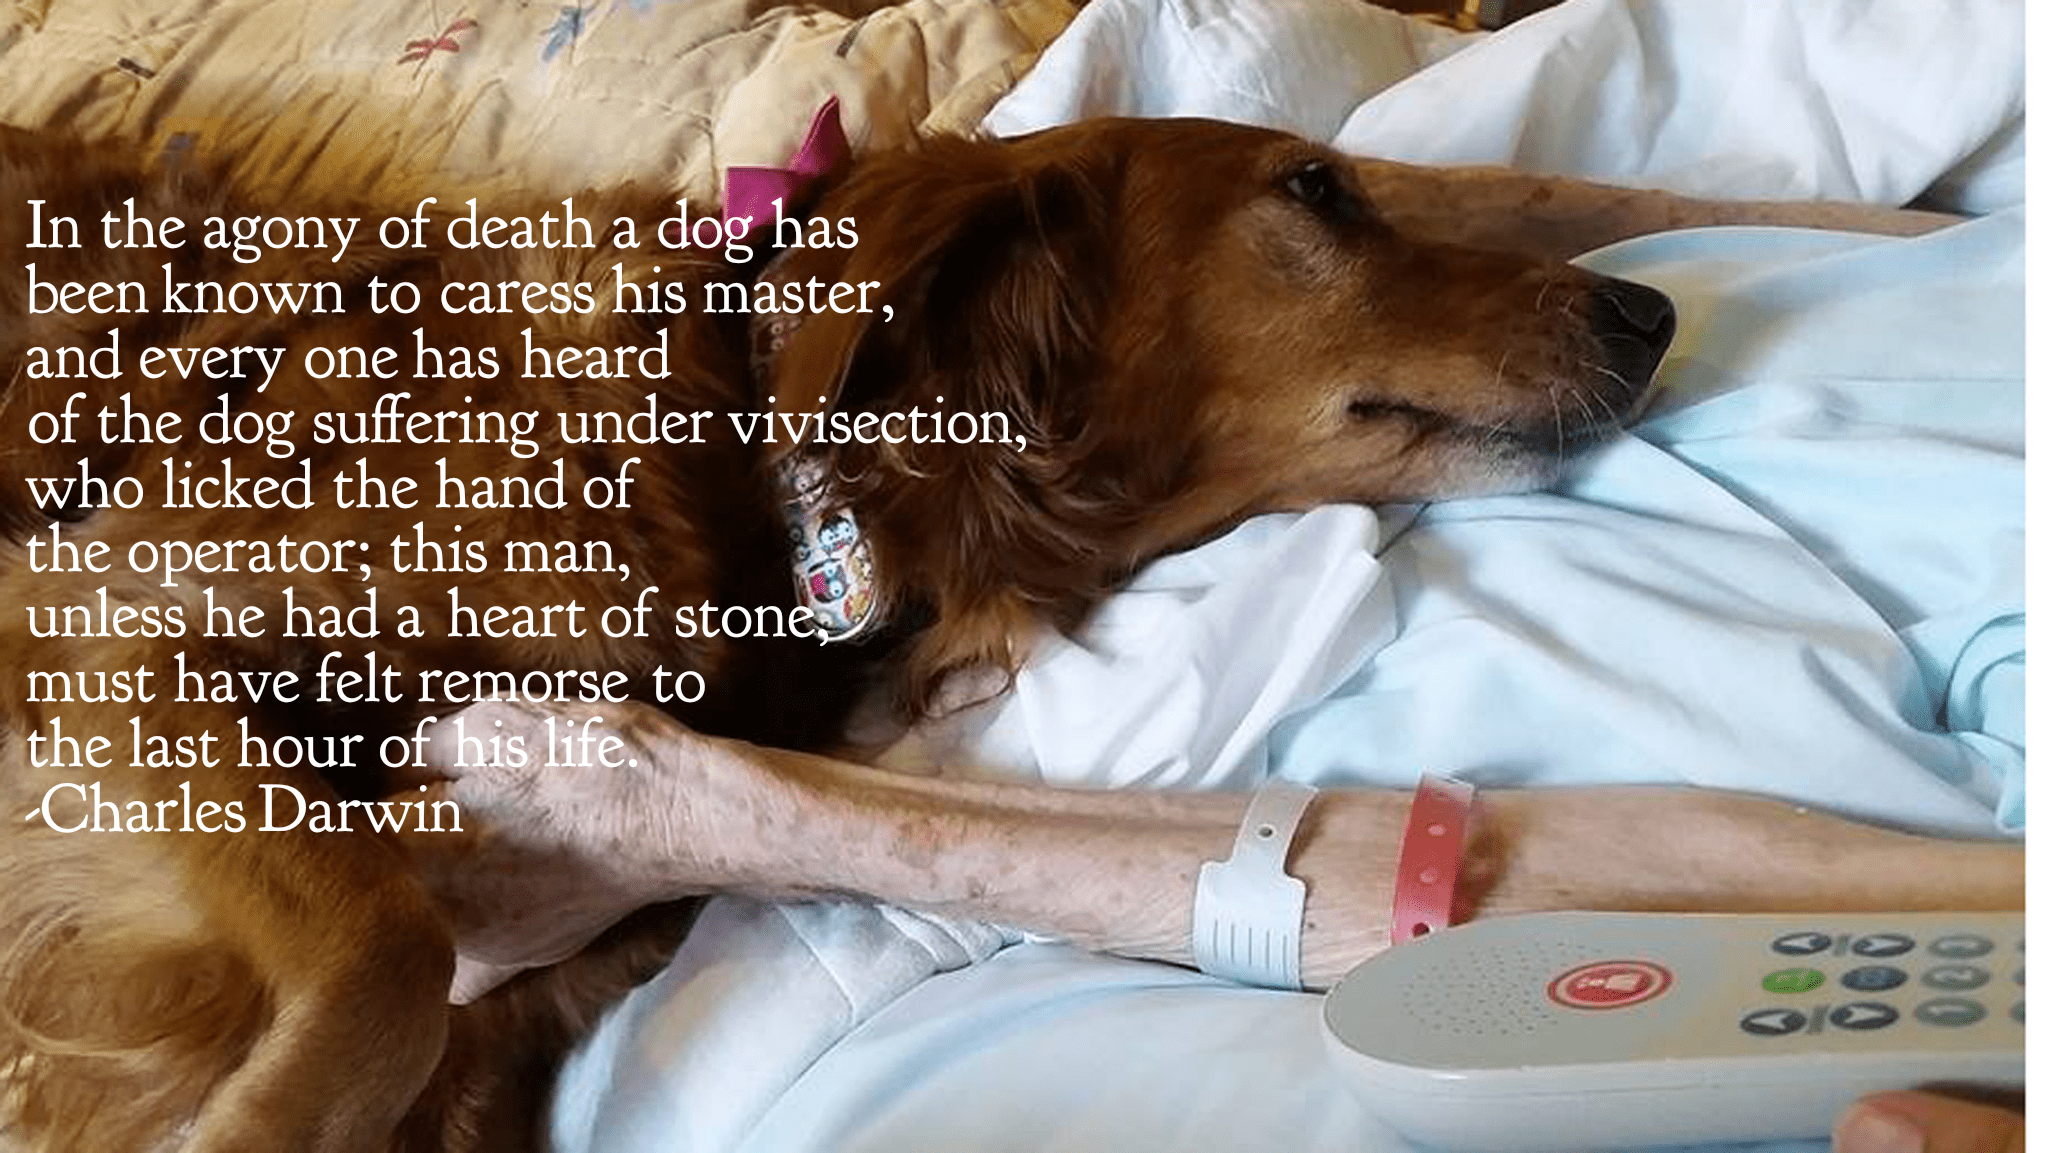 """In the agony of death a dog has been known to caress his master, and everyone has heard of the dog suffering under vivisection, who licked the hand of the operator; this man, unless he had a heart of stone, must have felt remorse to the last hour of his life."" -Charles Darwin [2048×1153]"